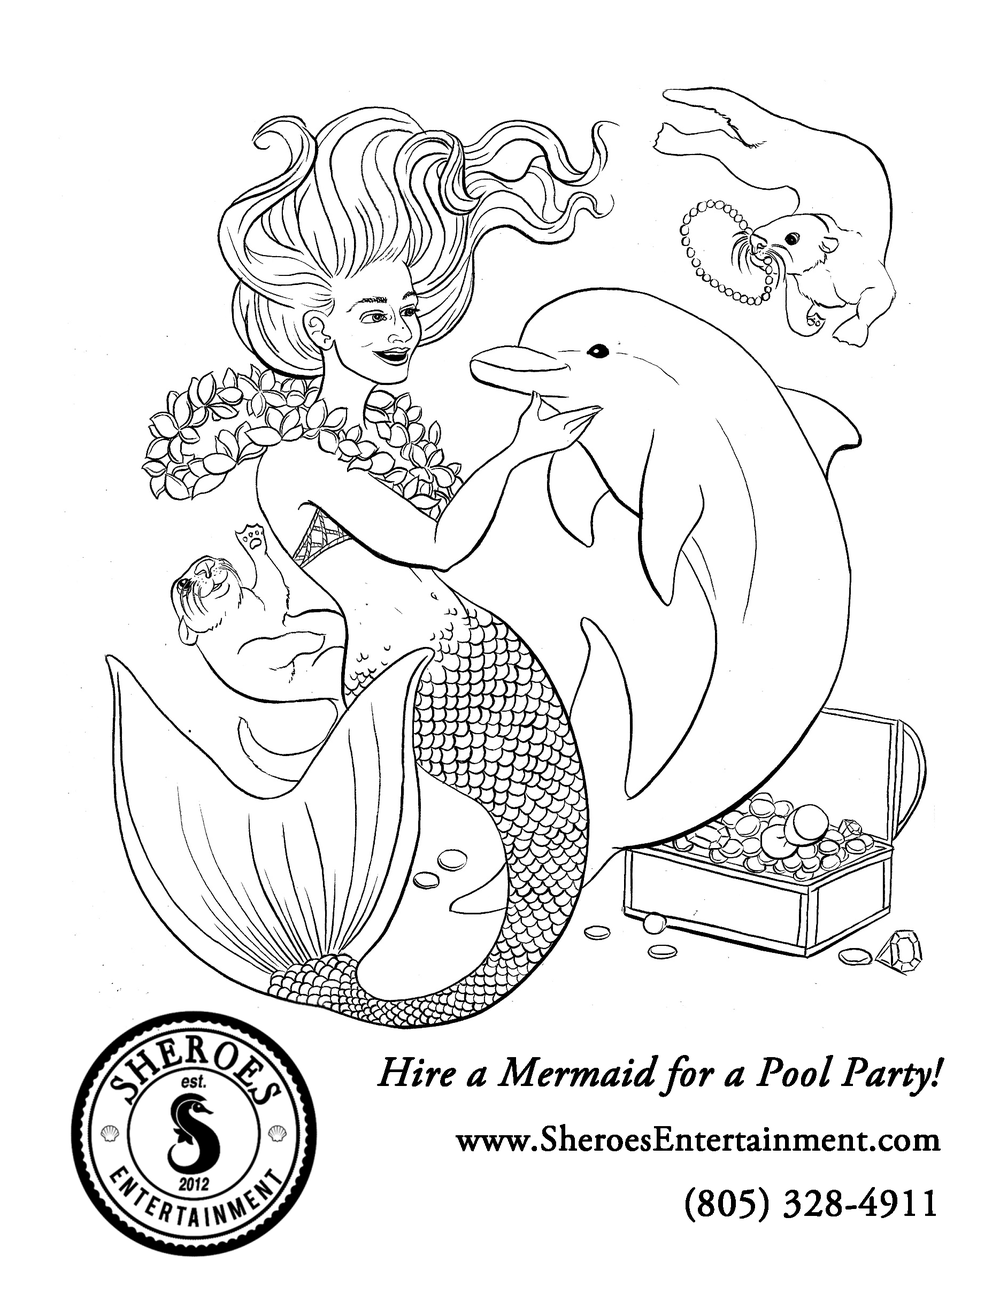 mermaid family coloring pages little mermaid sisters coloring pages buscar con google pages coloring mermaid family